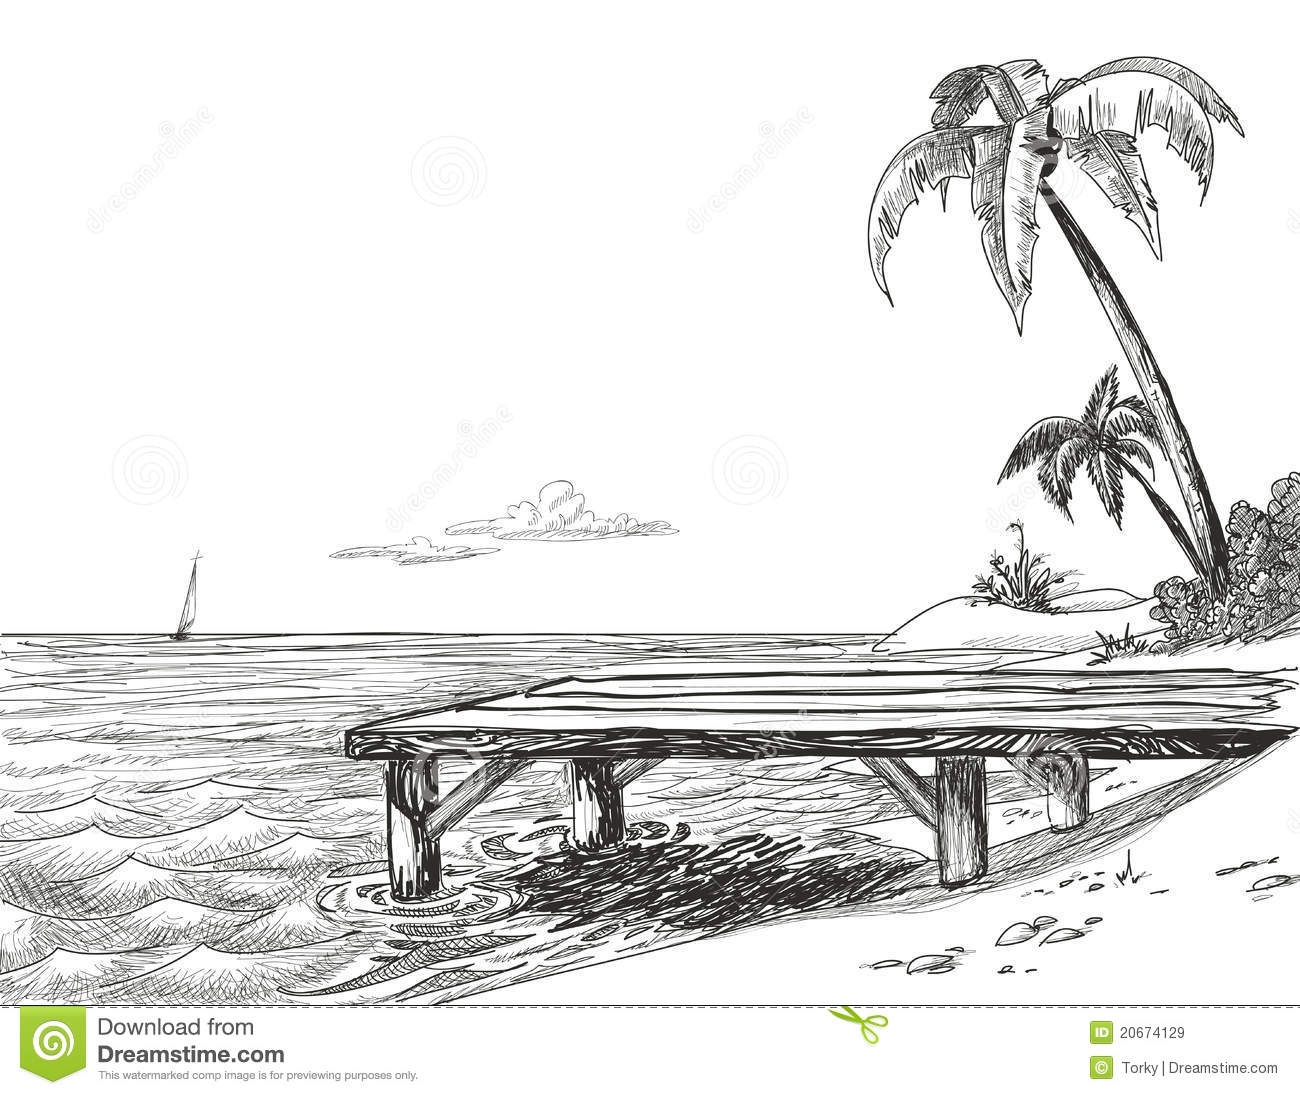 Beach Sketch Royalty Free Stock Images - Image: 20674129